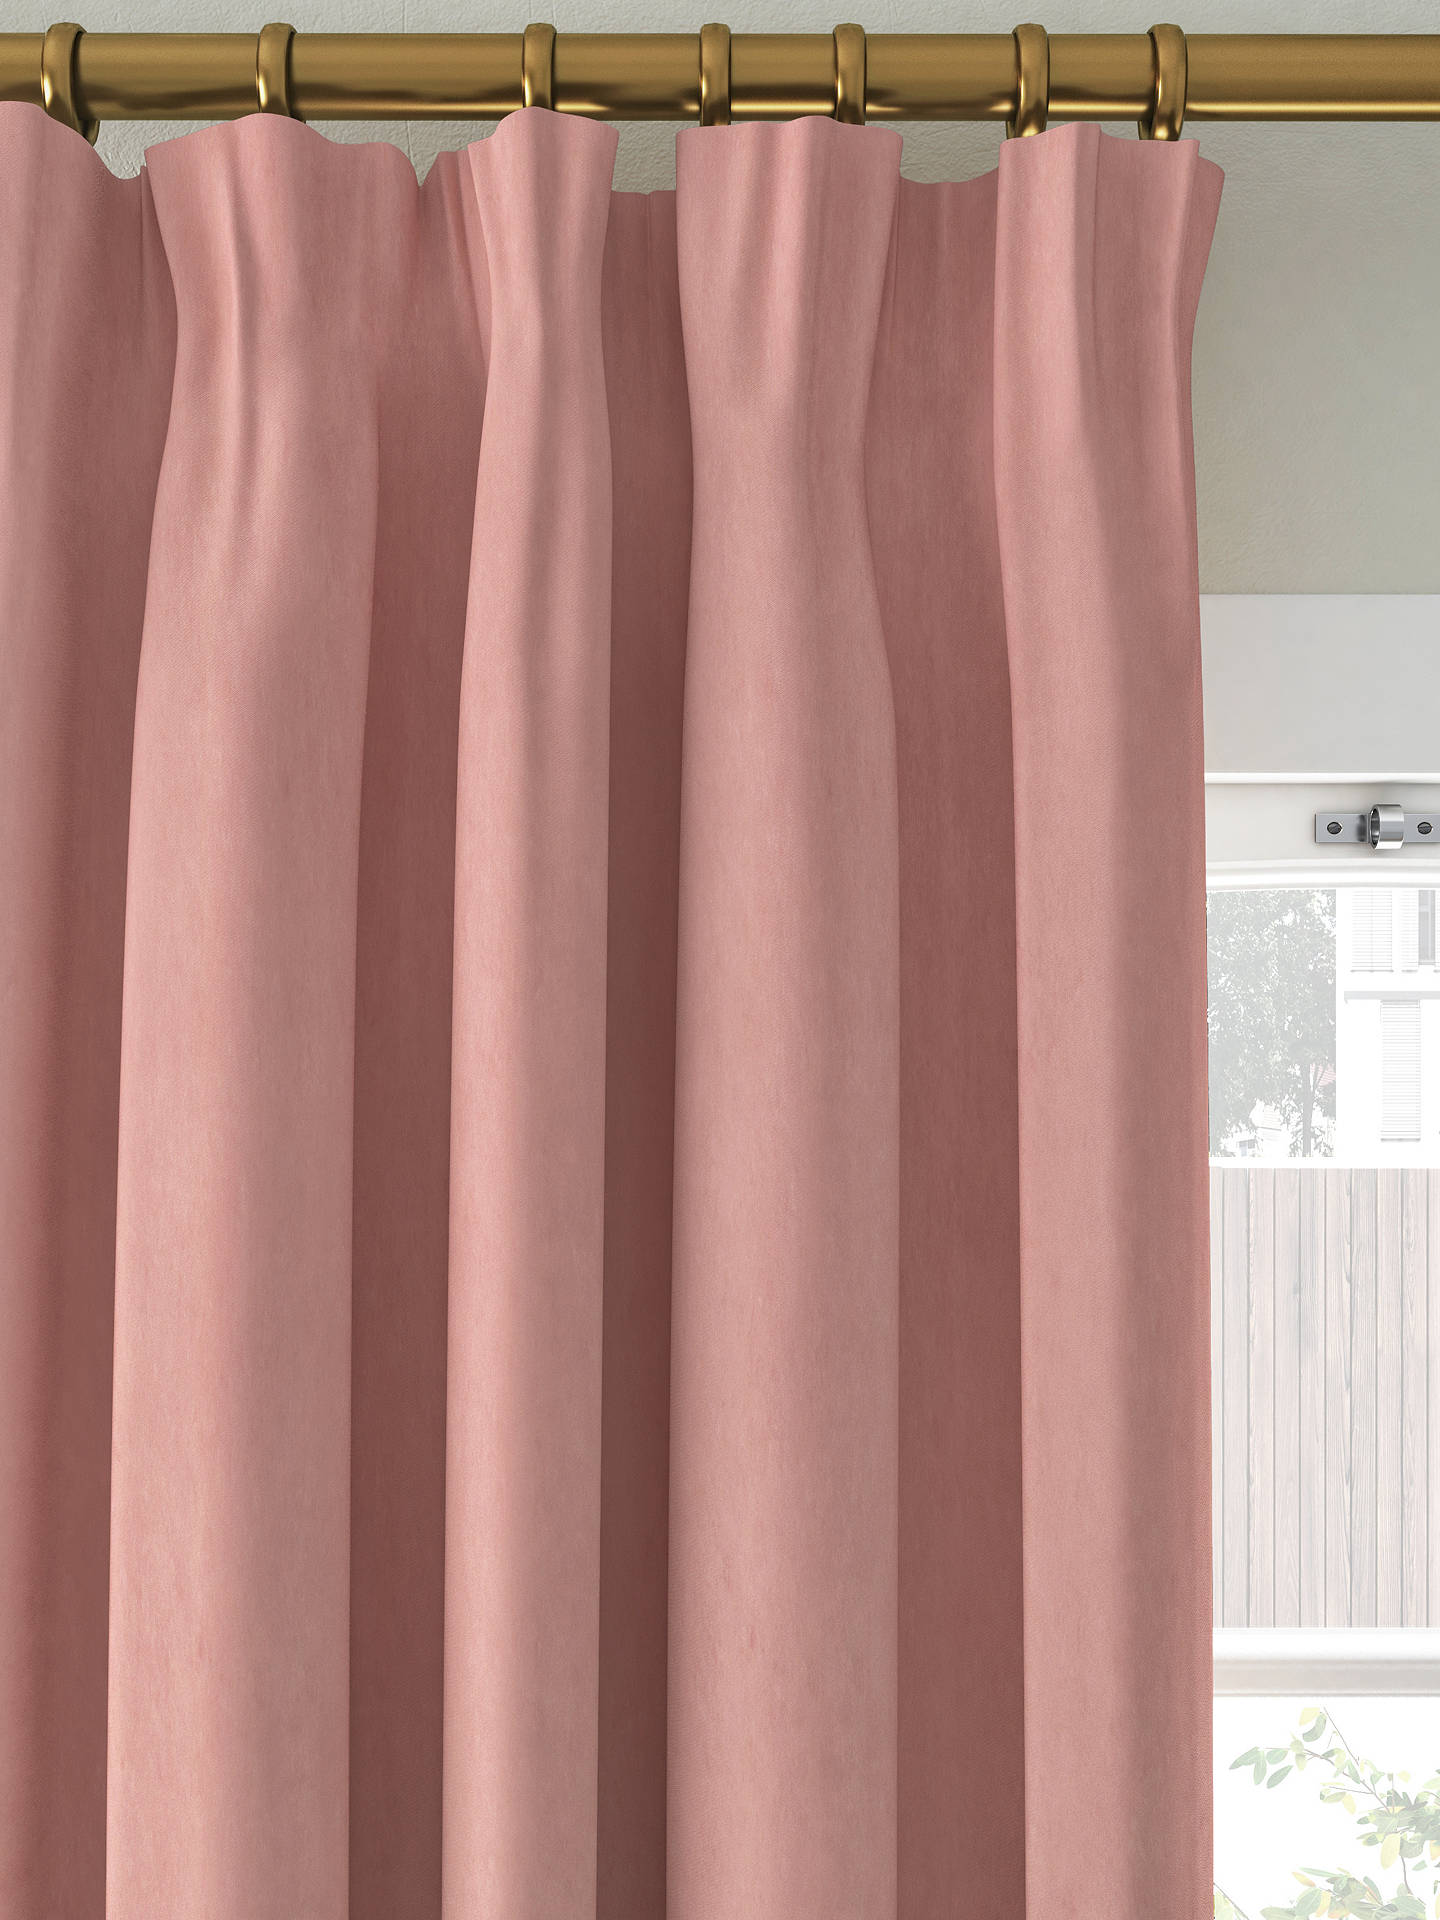 Buy John Lewis & Partners Velvet Pair Lined Pencil Pleat Curtains, Pink, W167 x Drop 137cm Online at johnlewis.com